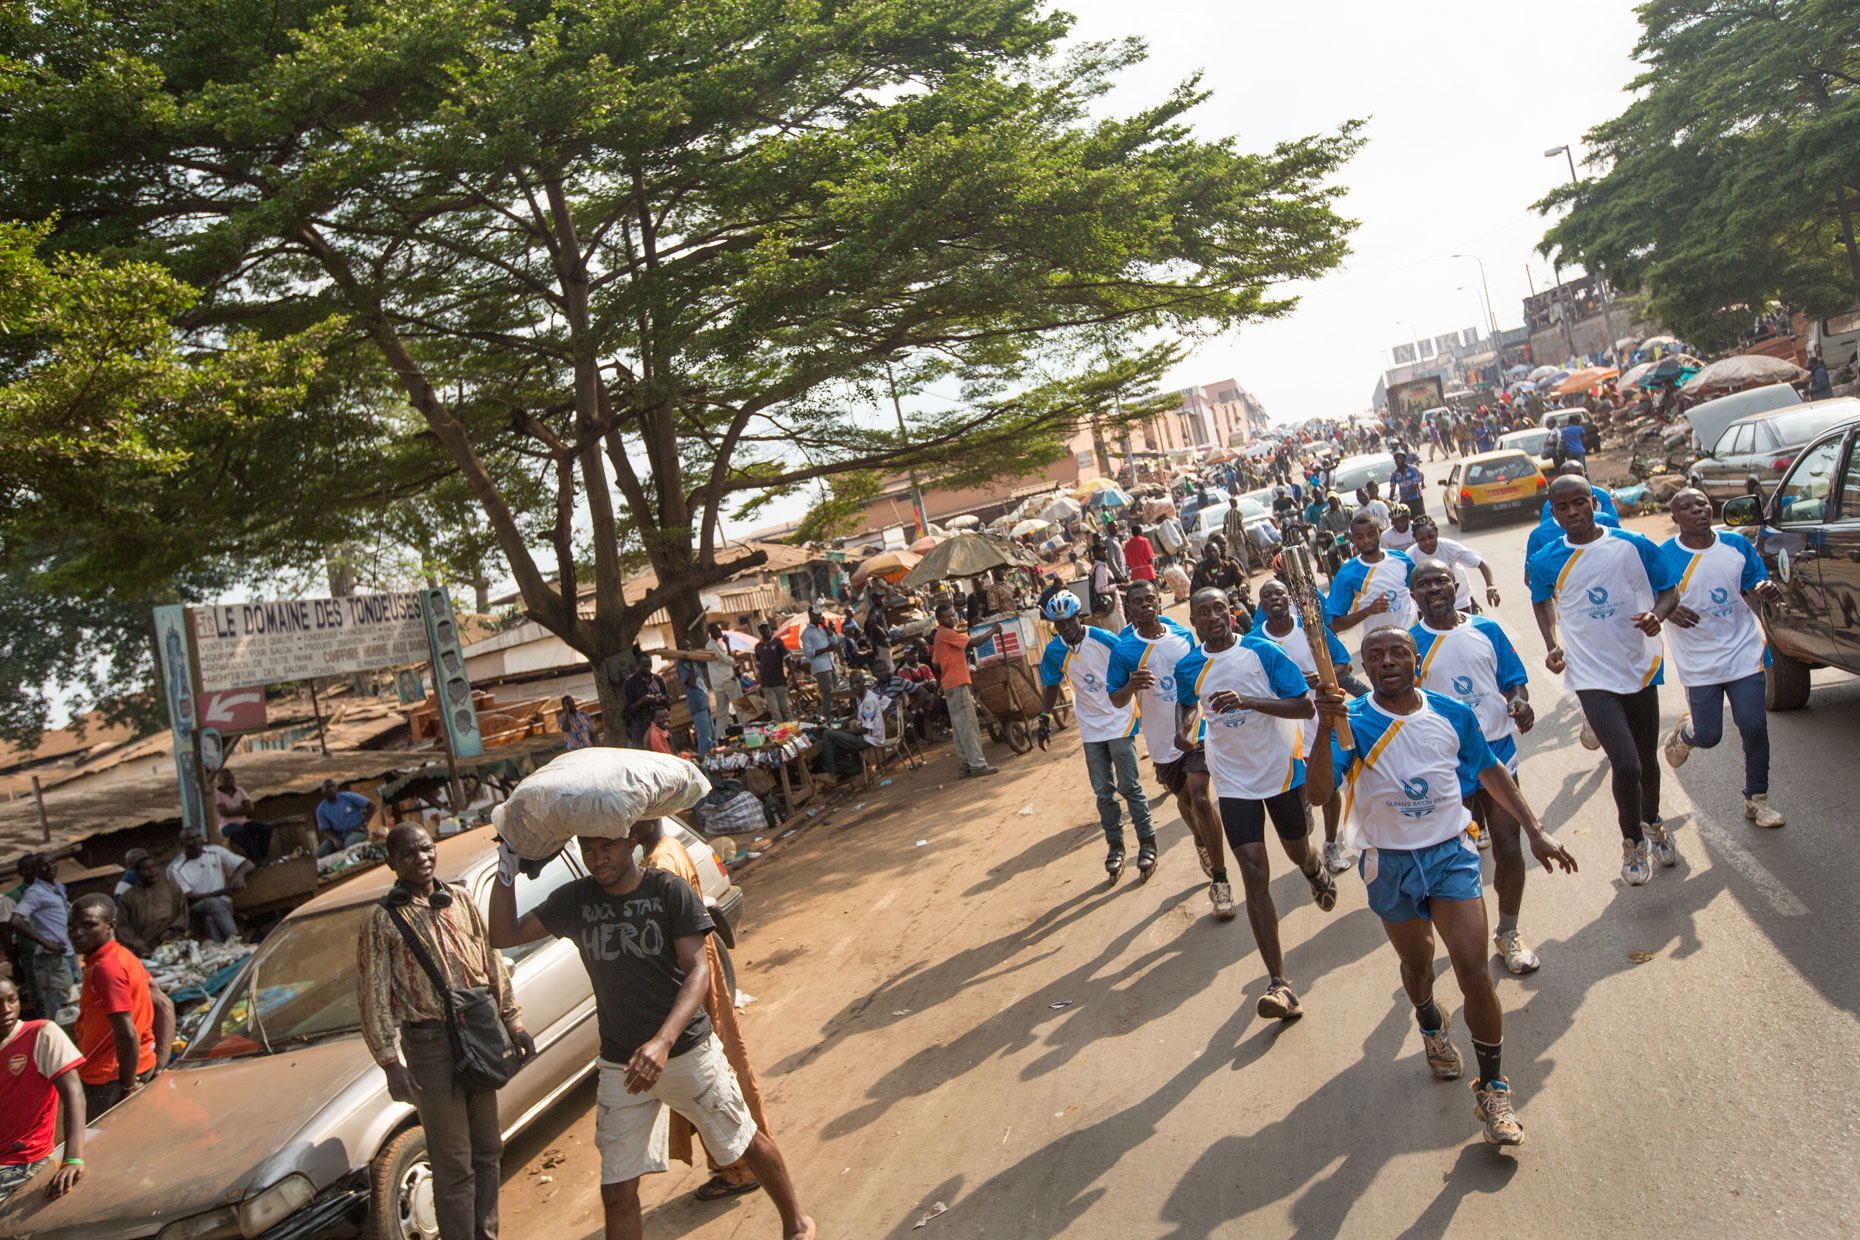 Runners in Yaounde Cameroon with Queen